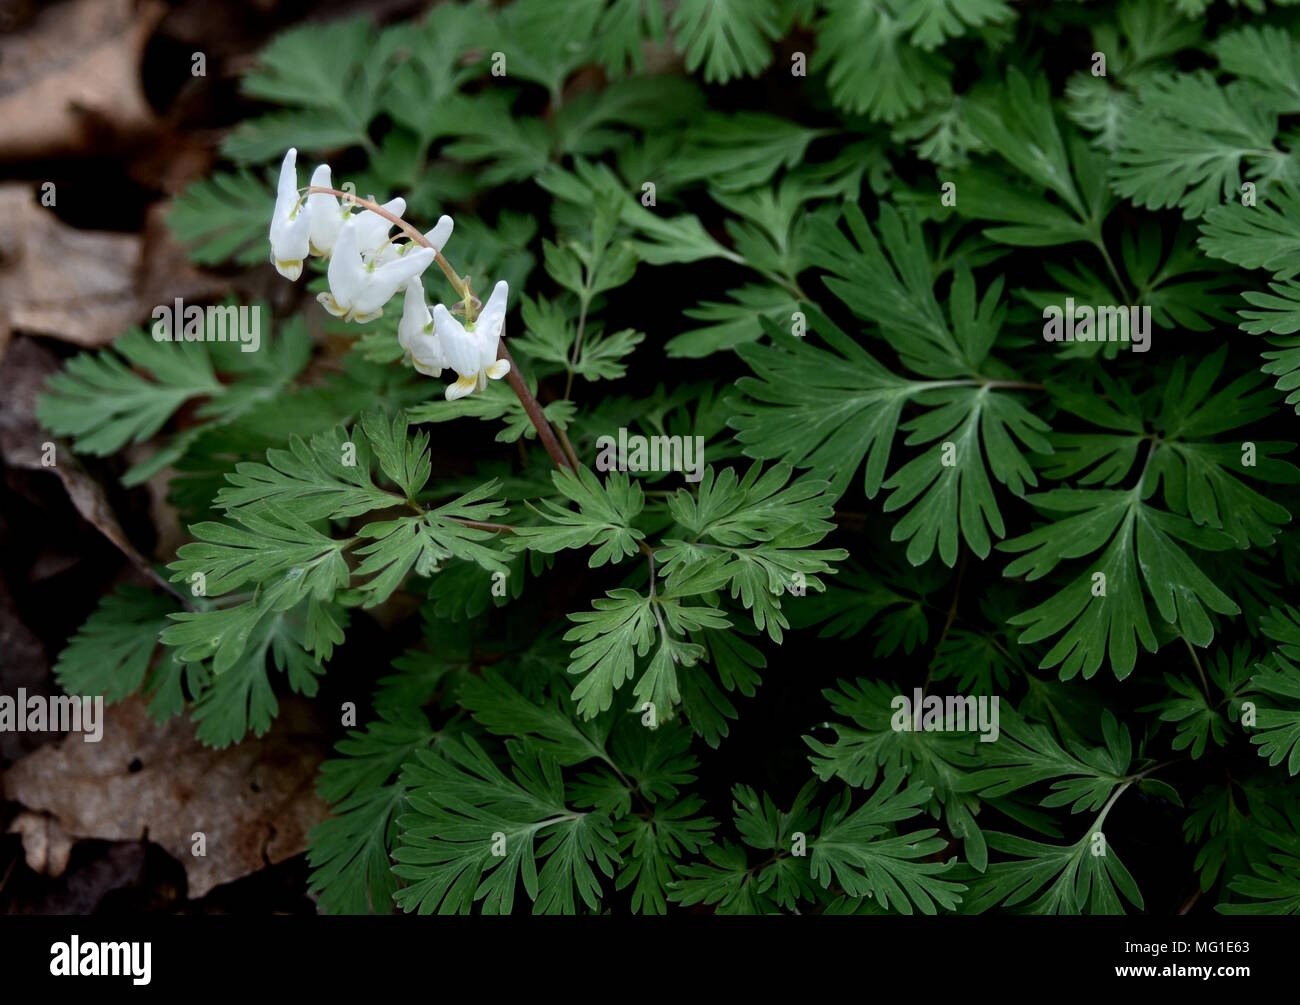 Unusual White Flowers Of Dutchmans Breeches Emerging In A Spring